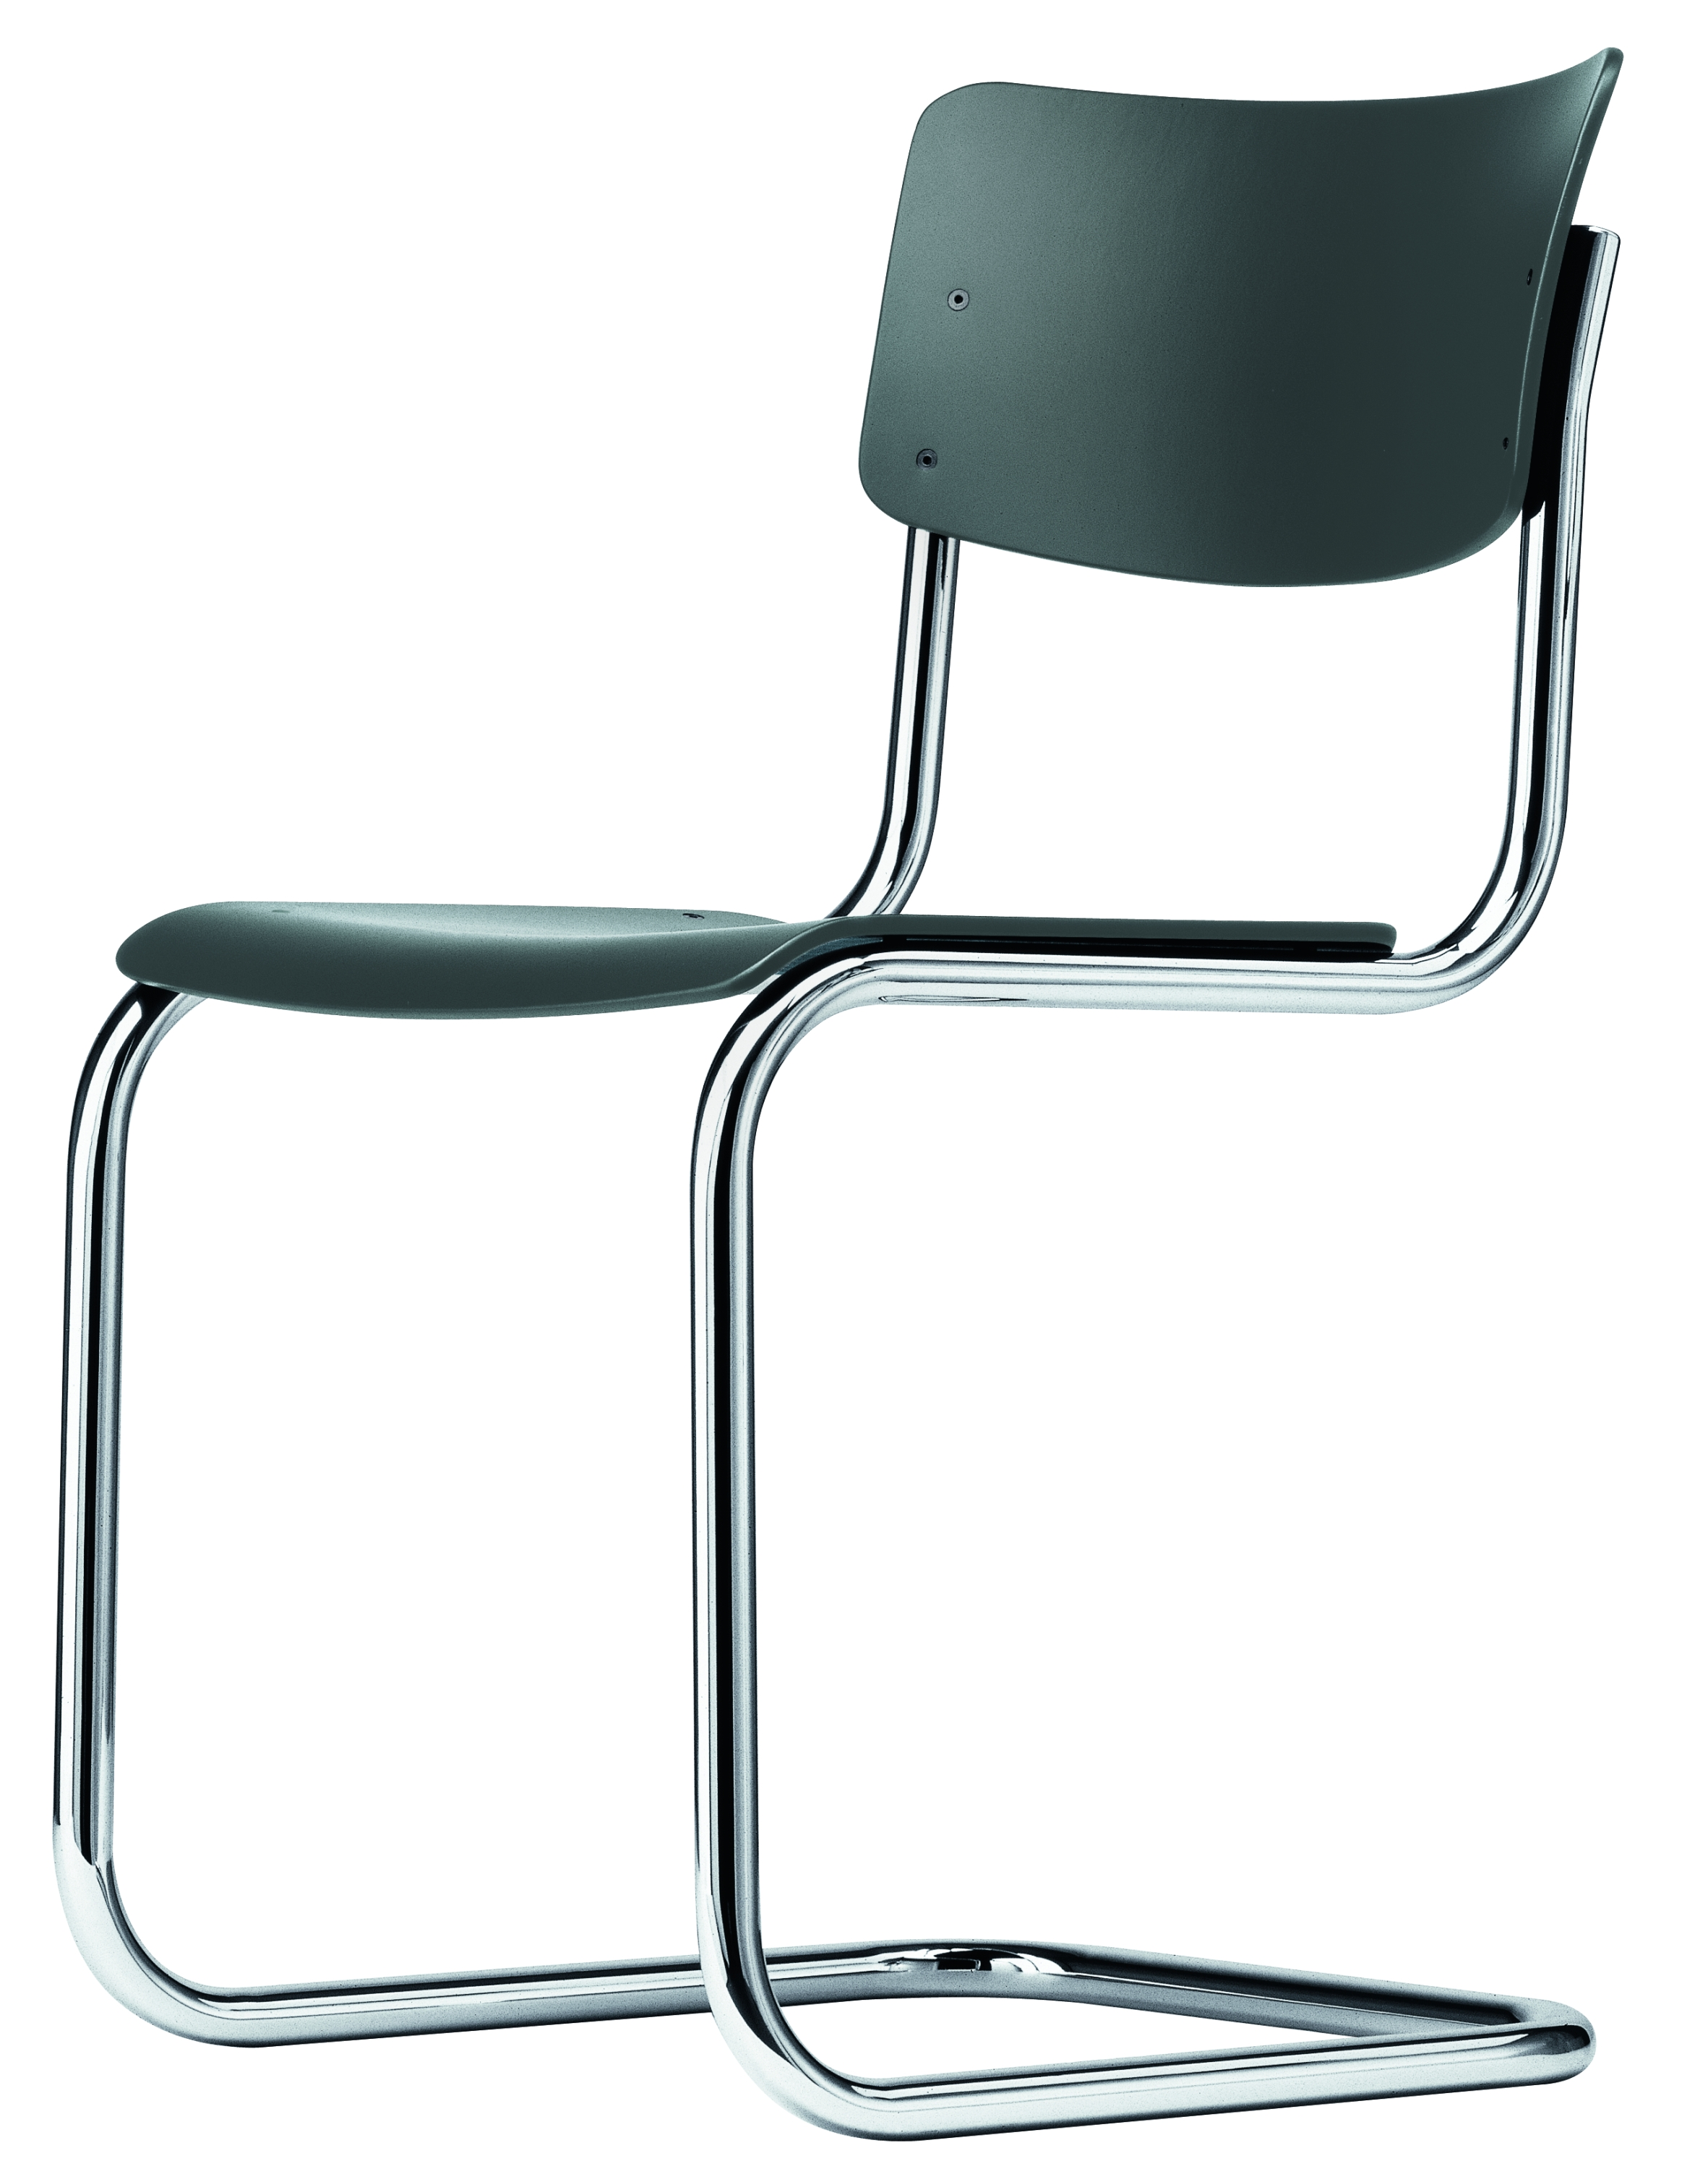 Filzgleiter Panton Chair filzgleiter panton chair design panton chair can be used